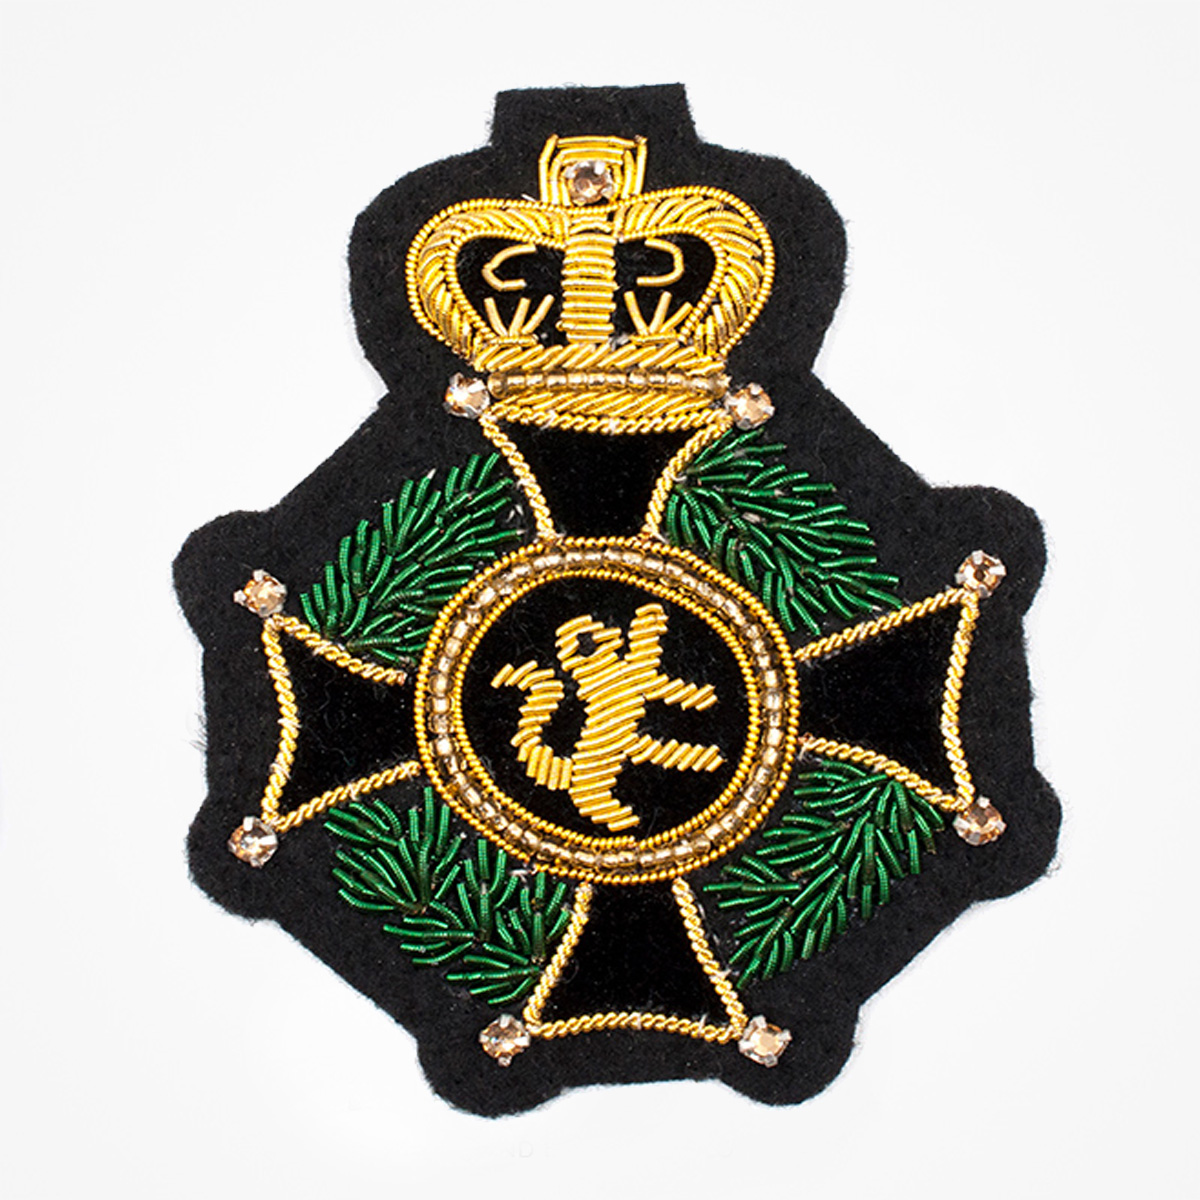 Italian Style embroidered Bullion wire Green Crown Lion Cross Blazer Crest Patches - Fashionable 3D embroidered look Made by skilled artisans Bullion wire and silk thread hand Stitched on Black color Felt Available in gold and silver colors Size = 75 mm height 60 mm width sew-on backing: Perfect for caps, sports jacket, leather jackets, blazer coat, Blazer Pocket, shirts uniforms, Accessories, and many More Pin backing: easy to removable 5